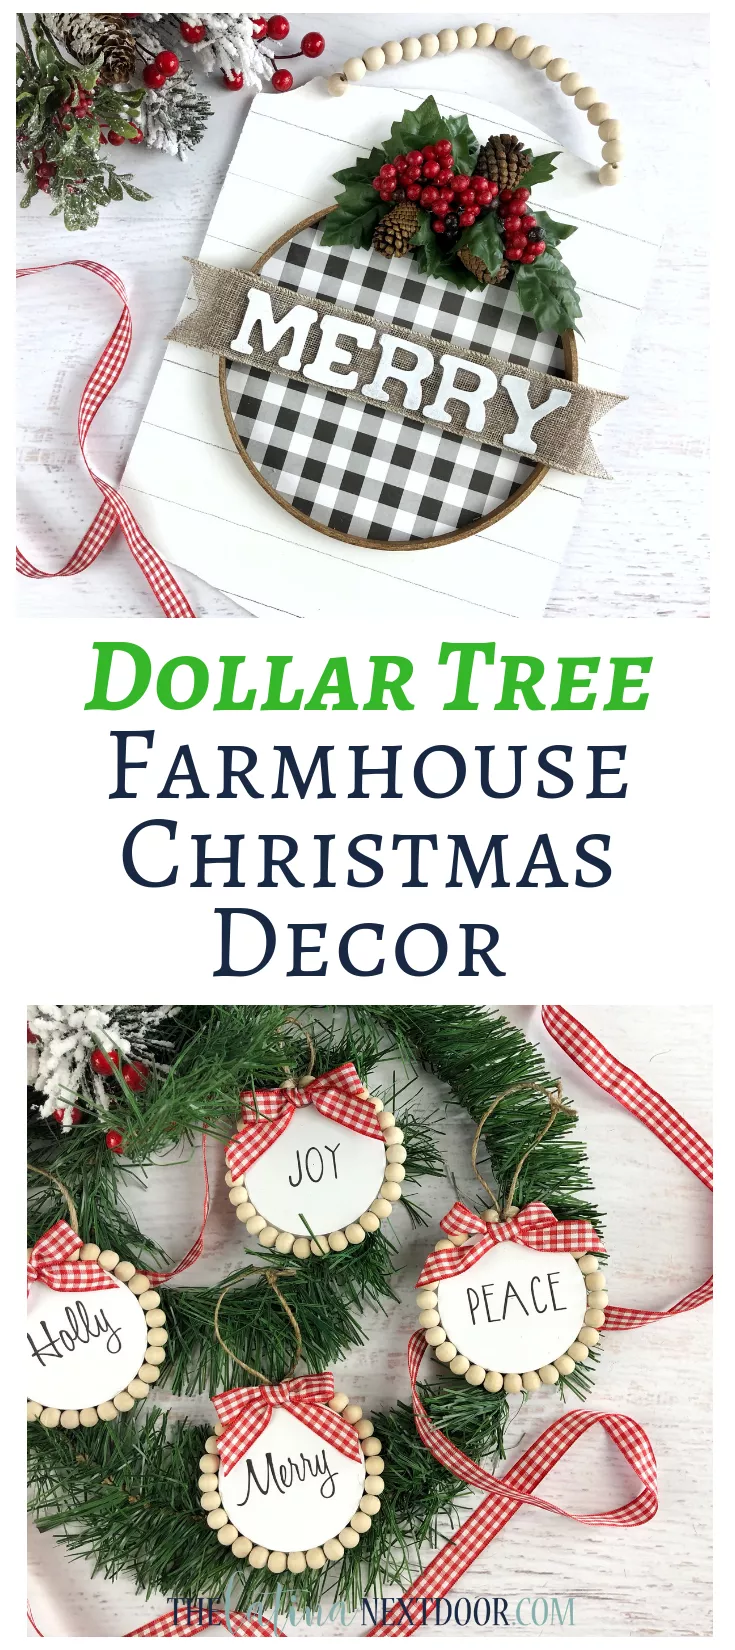 Dollar Tree Farmhouse Christmas Ornaments With Images Farmhouse Christmas Ornaments Diy